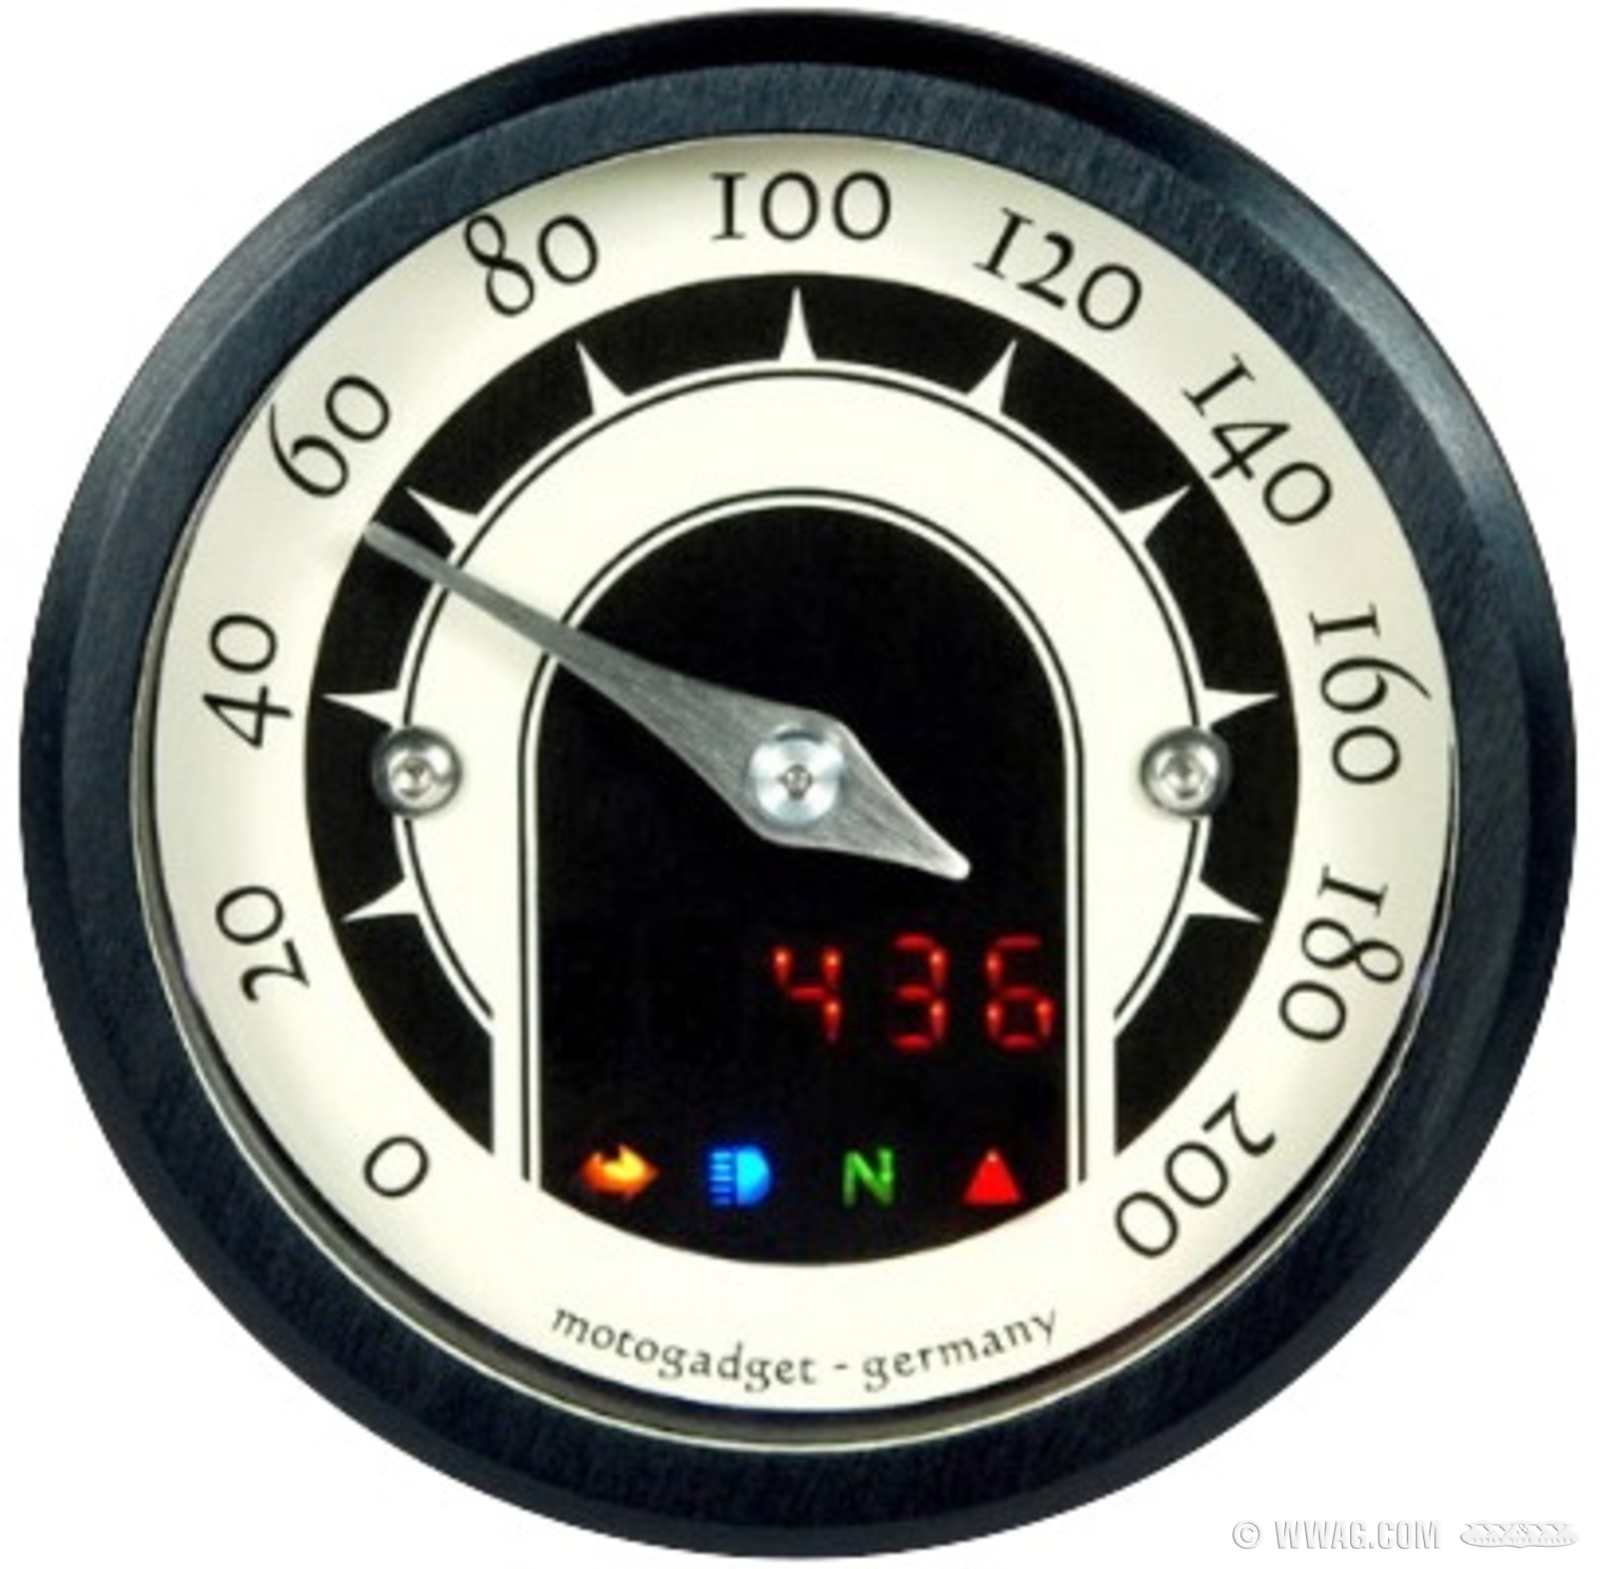 W&W Cycles - Speedometers and Instruments > motogadget